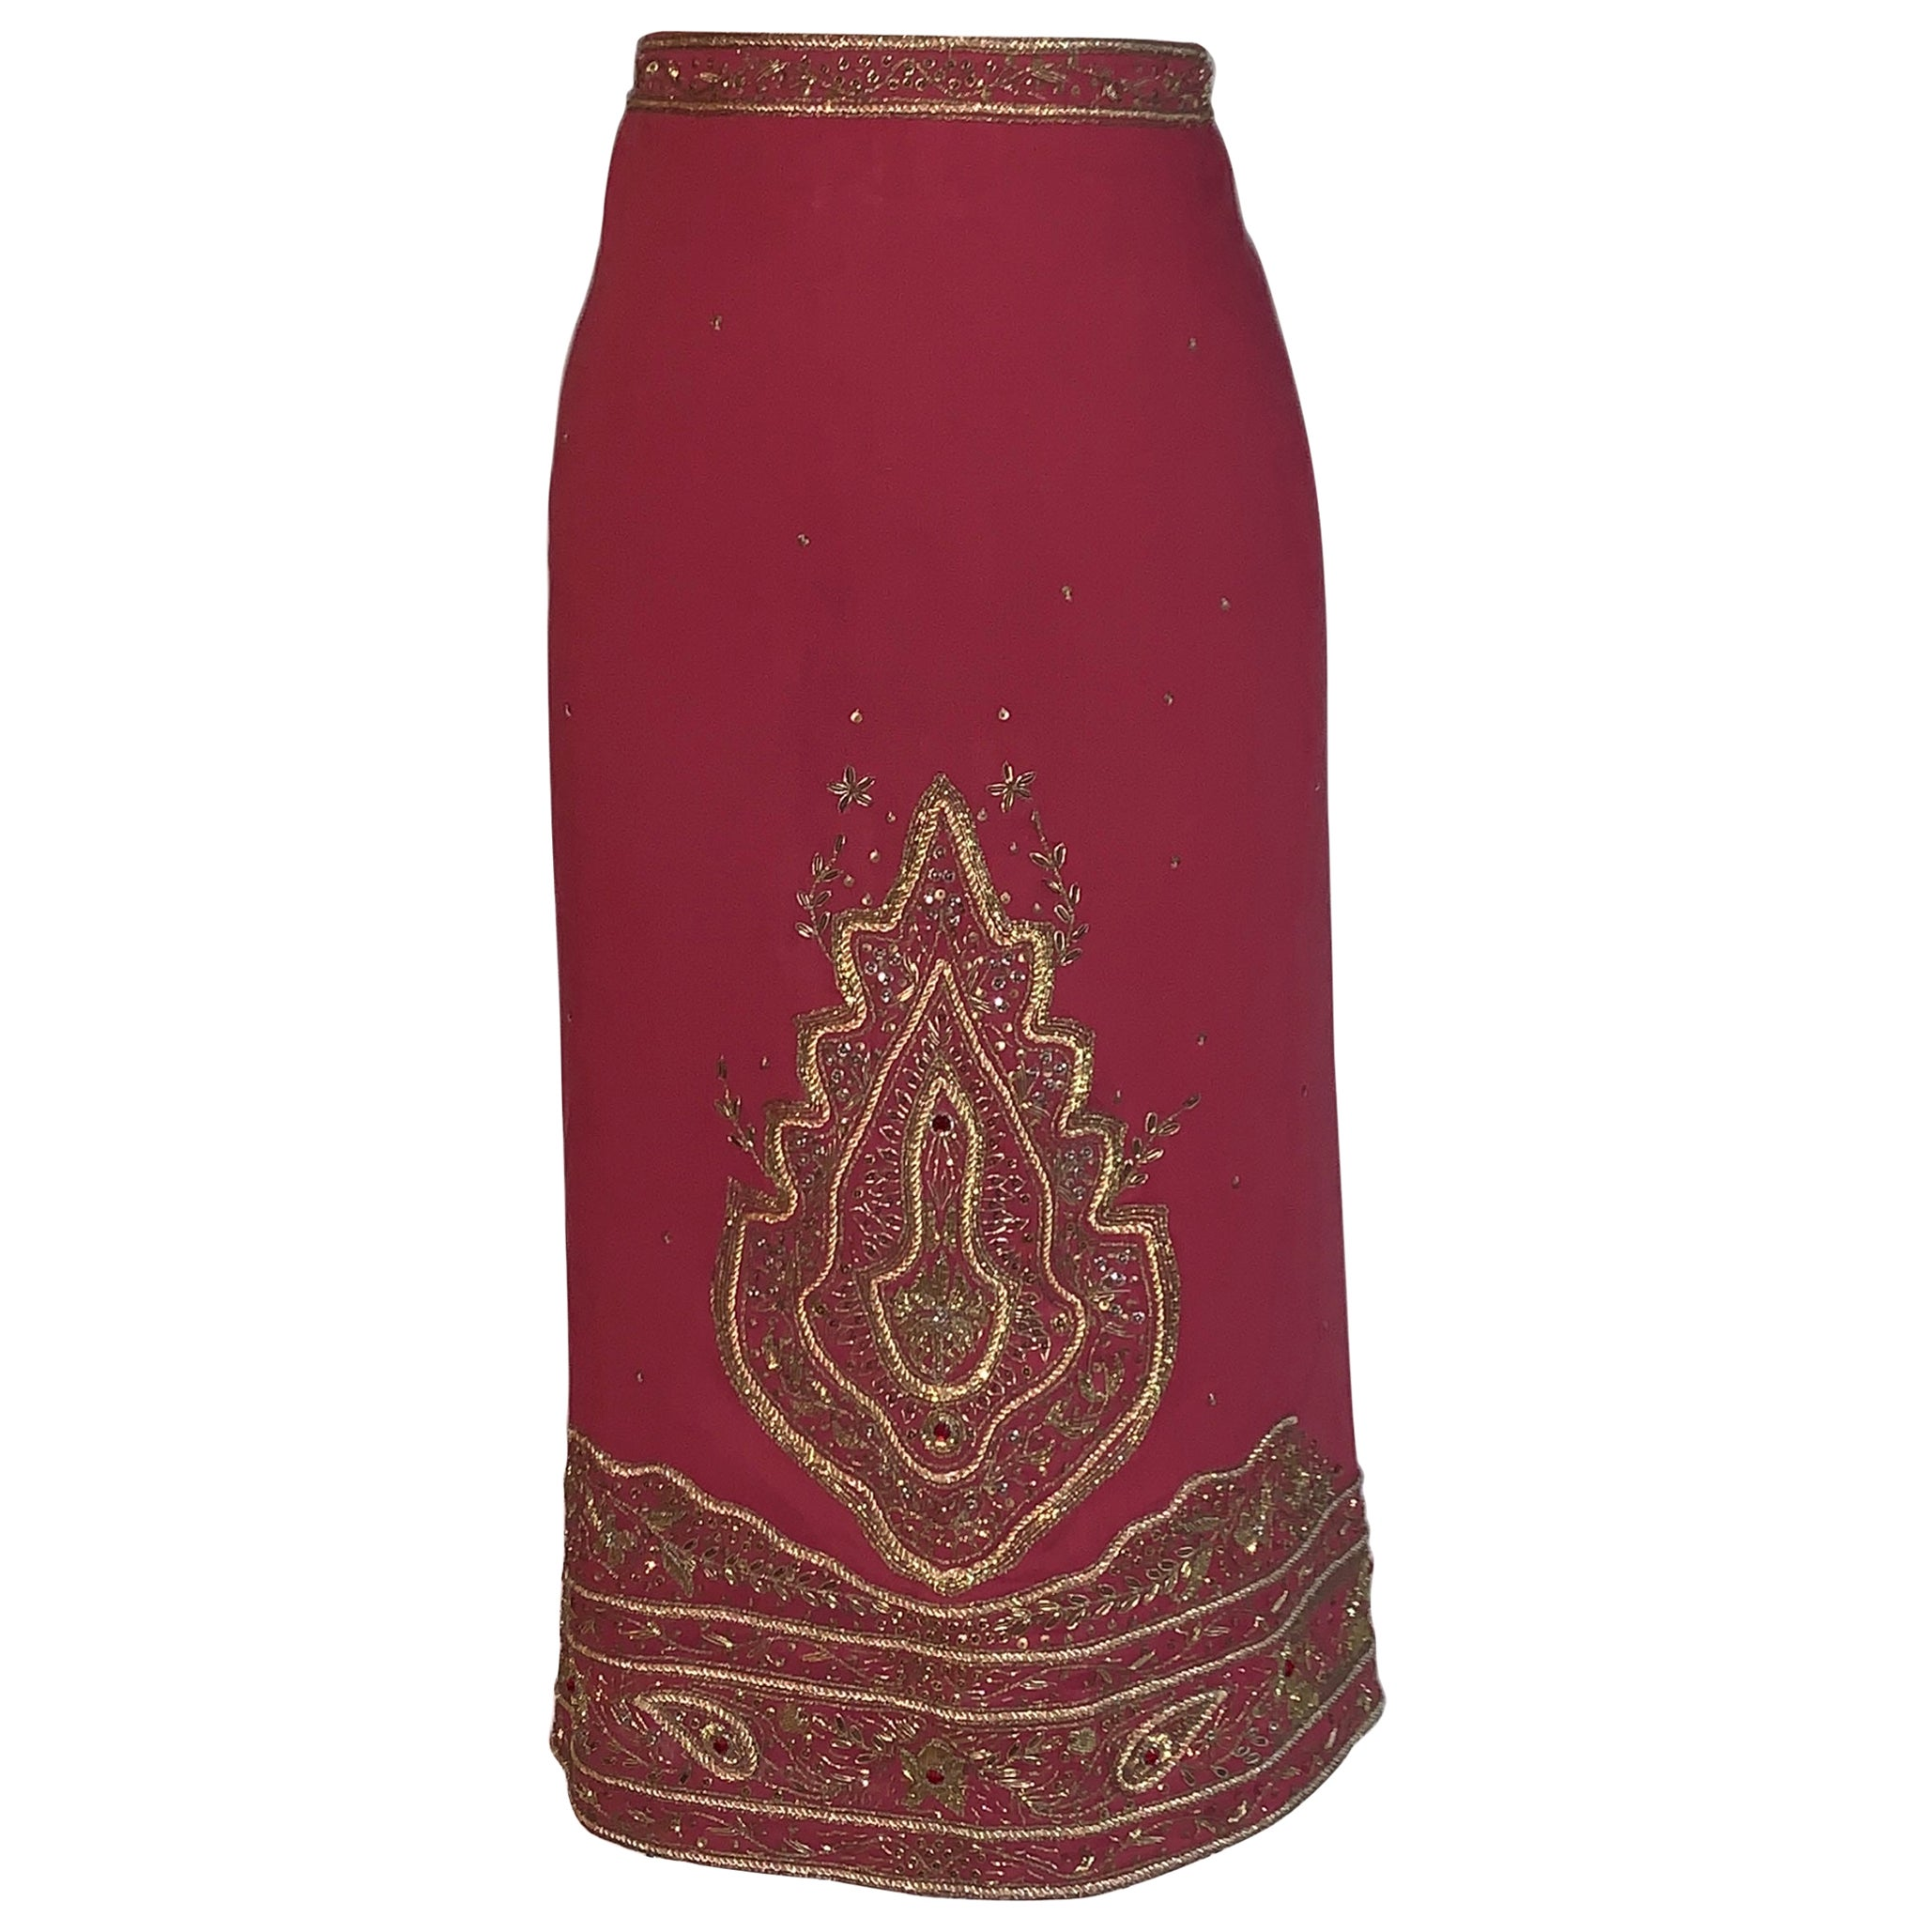 Alexander Mcqueen 2004 Gold Embellished Burgundy Red Pencil Skirt